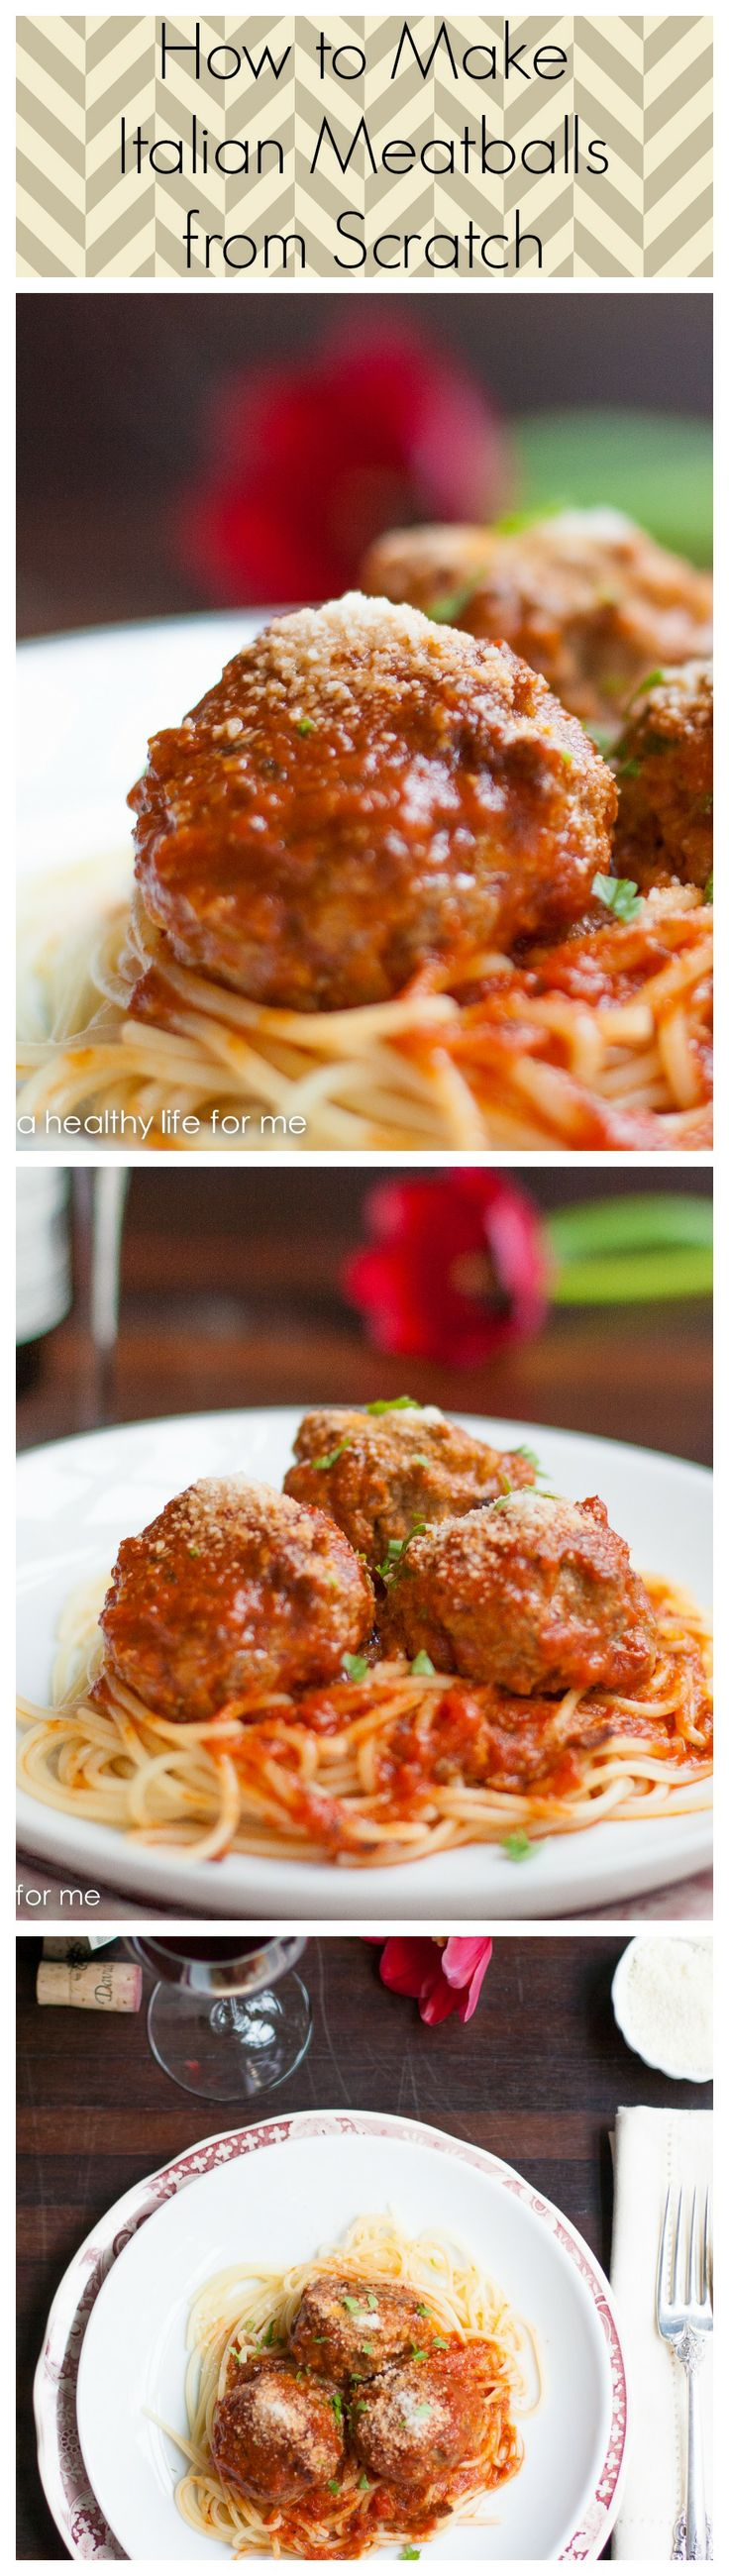 How to Make Homemade Italian Meatballs from Scratch.  http://ahealthylifeforme.com/2014/01/26/how-to-make-italian-meatballs/